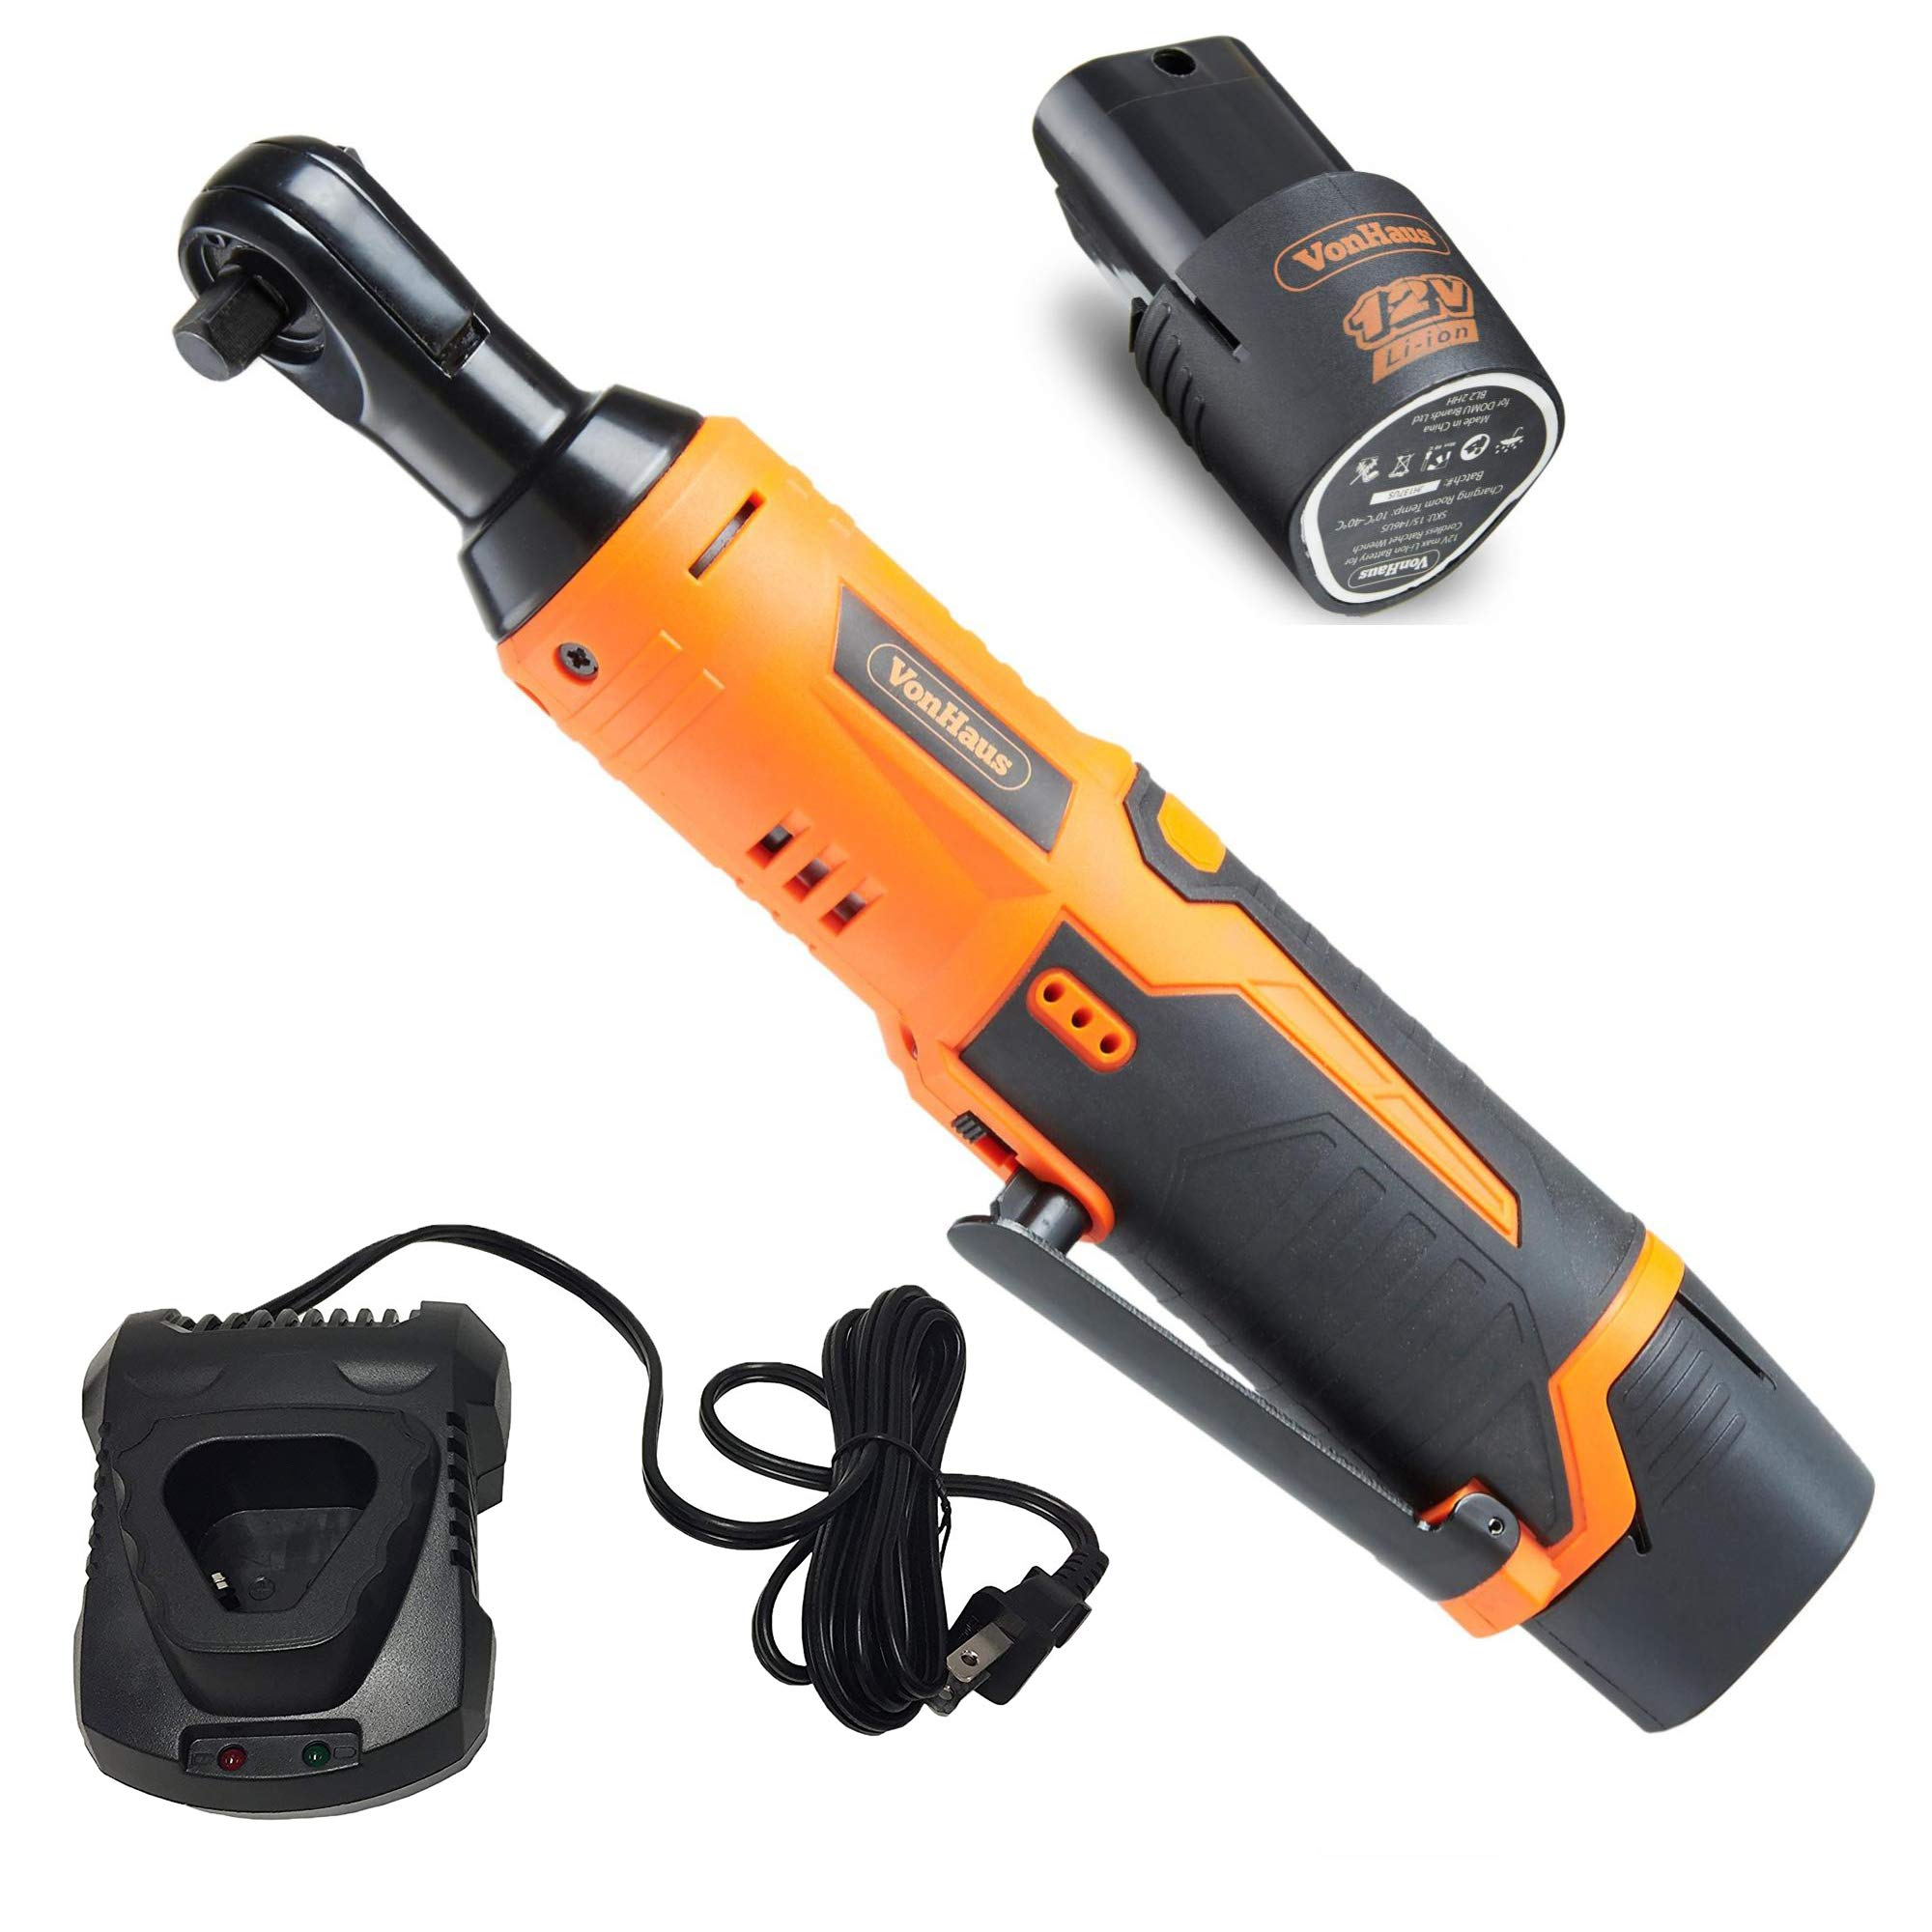 VonHaus Cordless Electric Ratchet Wrench Set with 12V Lithium-Ion Battery and Charger Kit 3/8'' Drive 15/145US